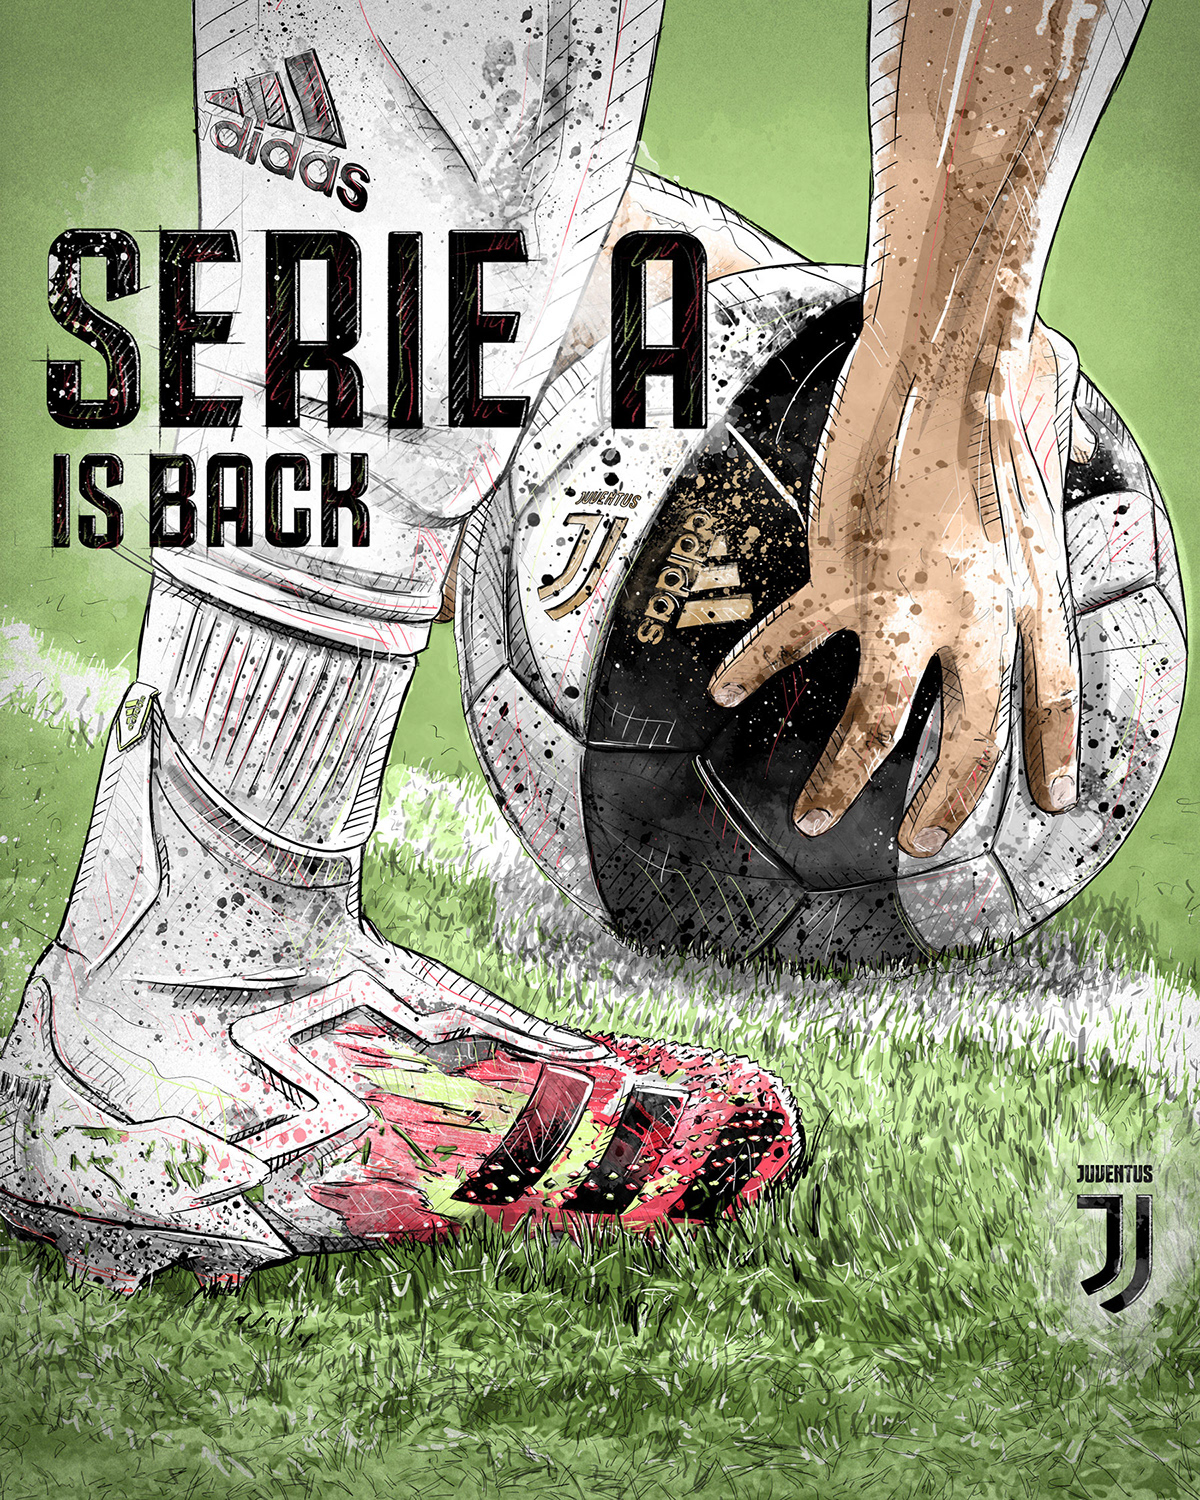 Dynamic sport/football illustration for Juventus and Serie A